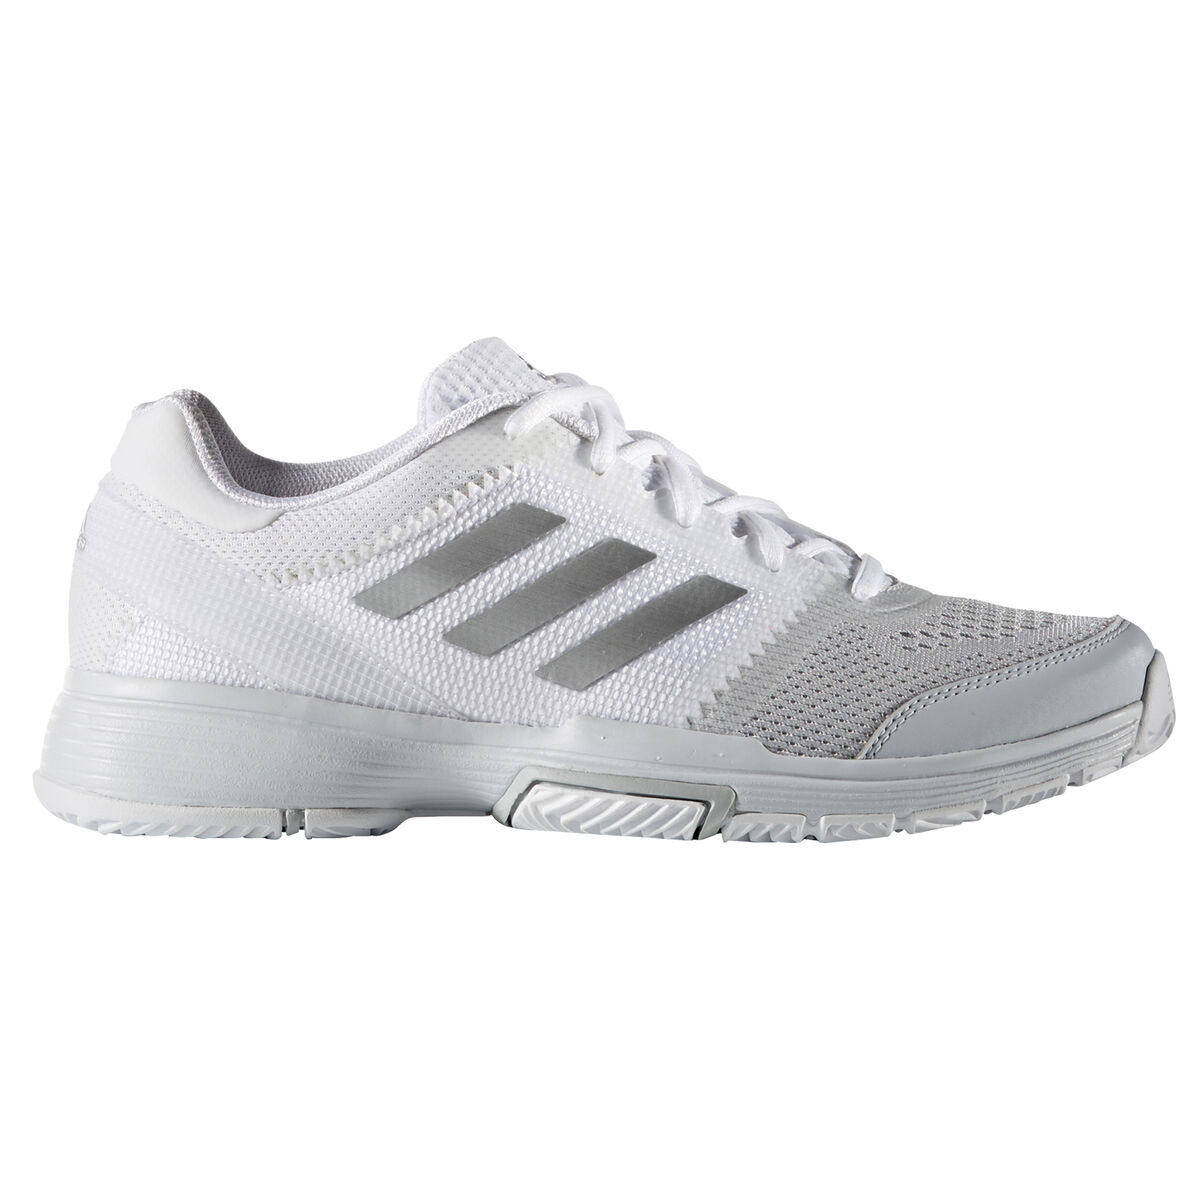 4ad177ebeaa Images. adidas Barricade Club Women  39 s Tennis Shoe ...